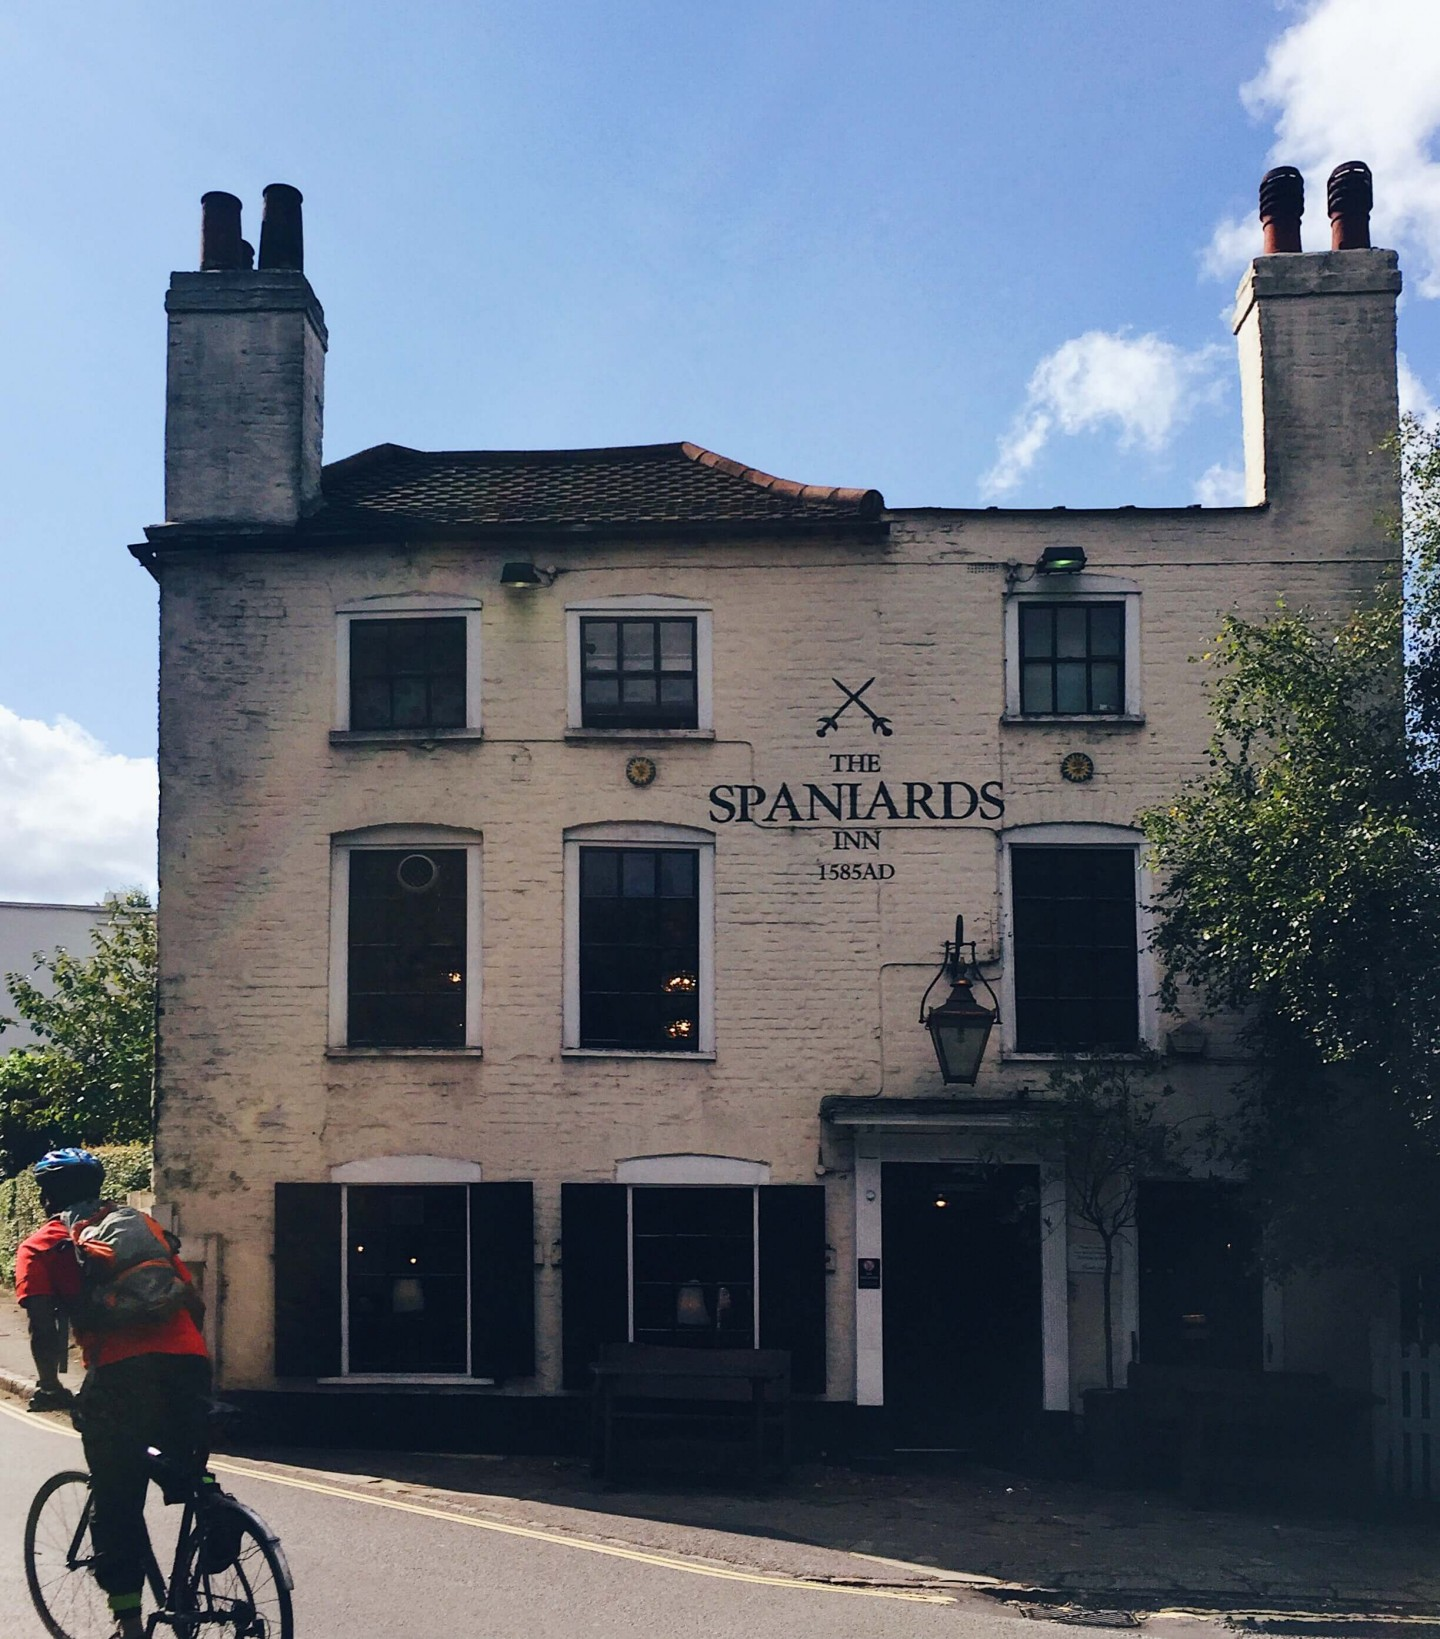 This historic Spaniards Inn pub at the top of Hampstead Heath. It serves great food!